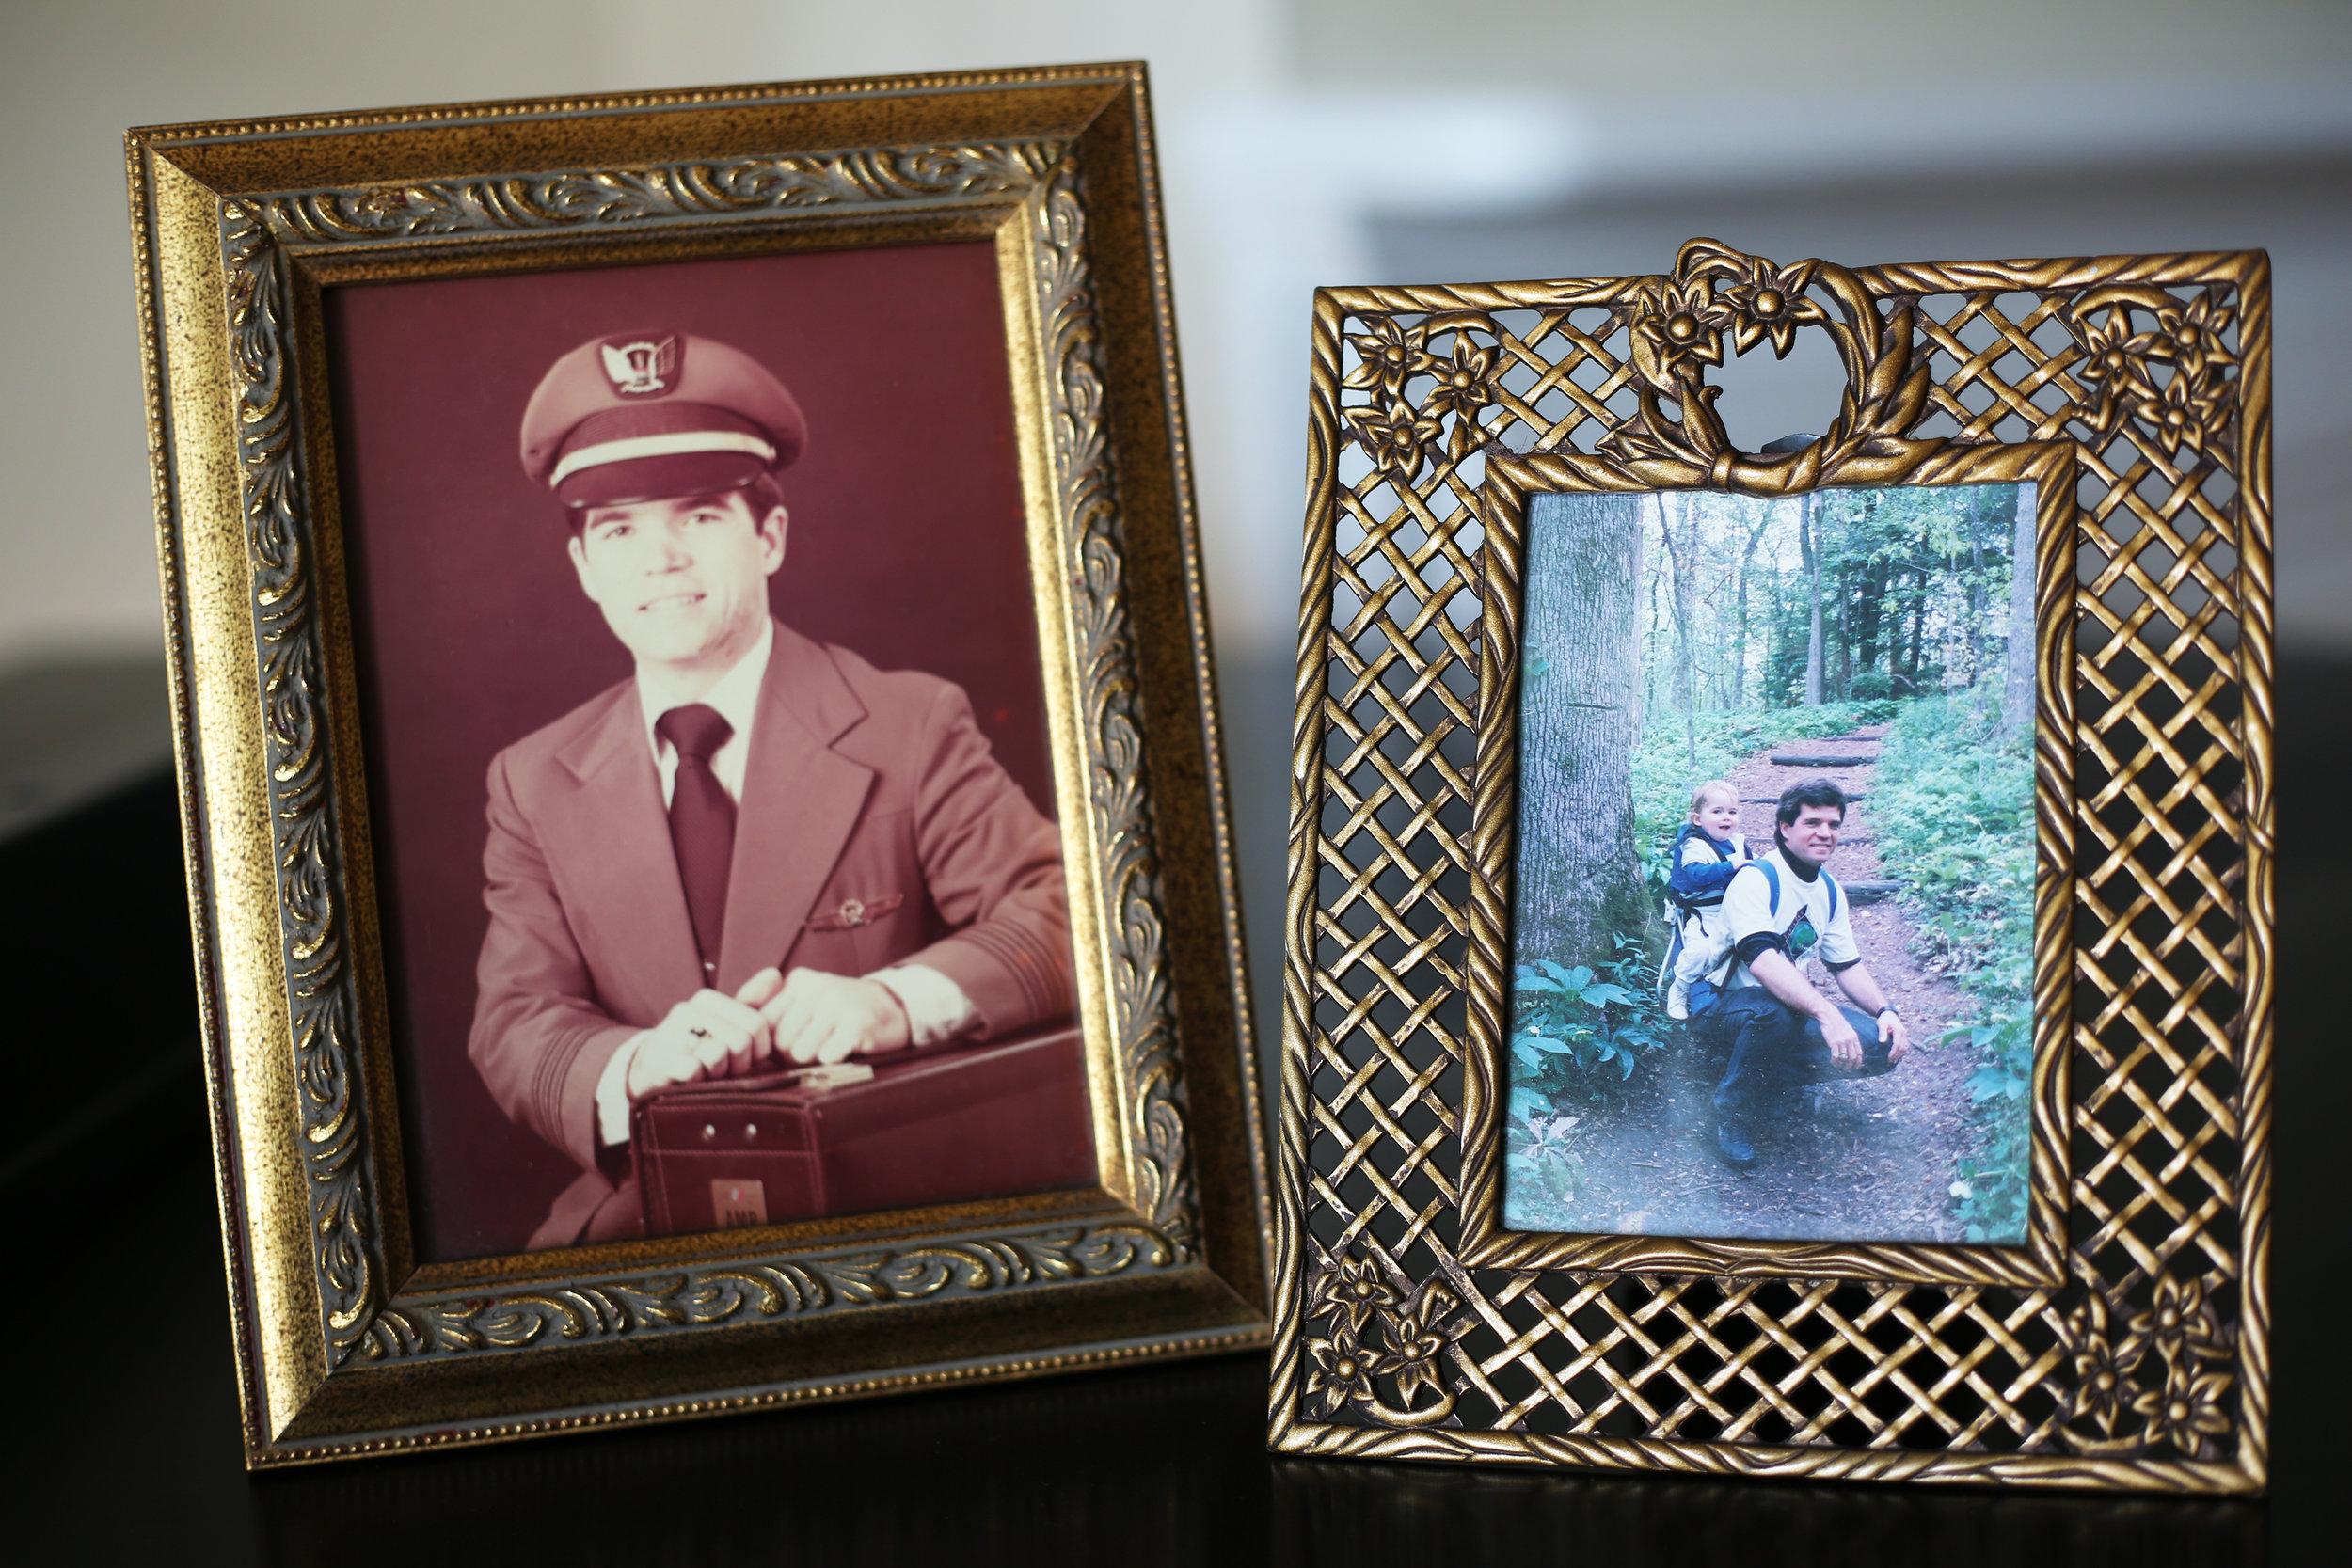 On the left: Dad's first official company photo with United Airlines, shortly after he was hired at age 24.  On the right: Dad hiking with me on his back near our first home in Knoxville, Tennessee.